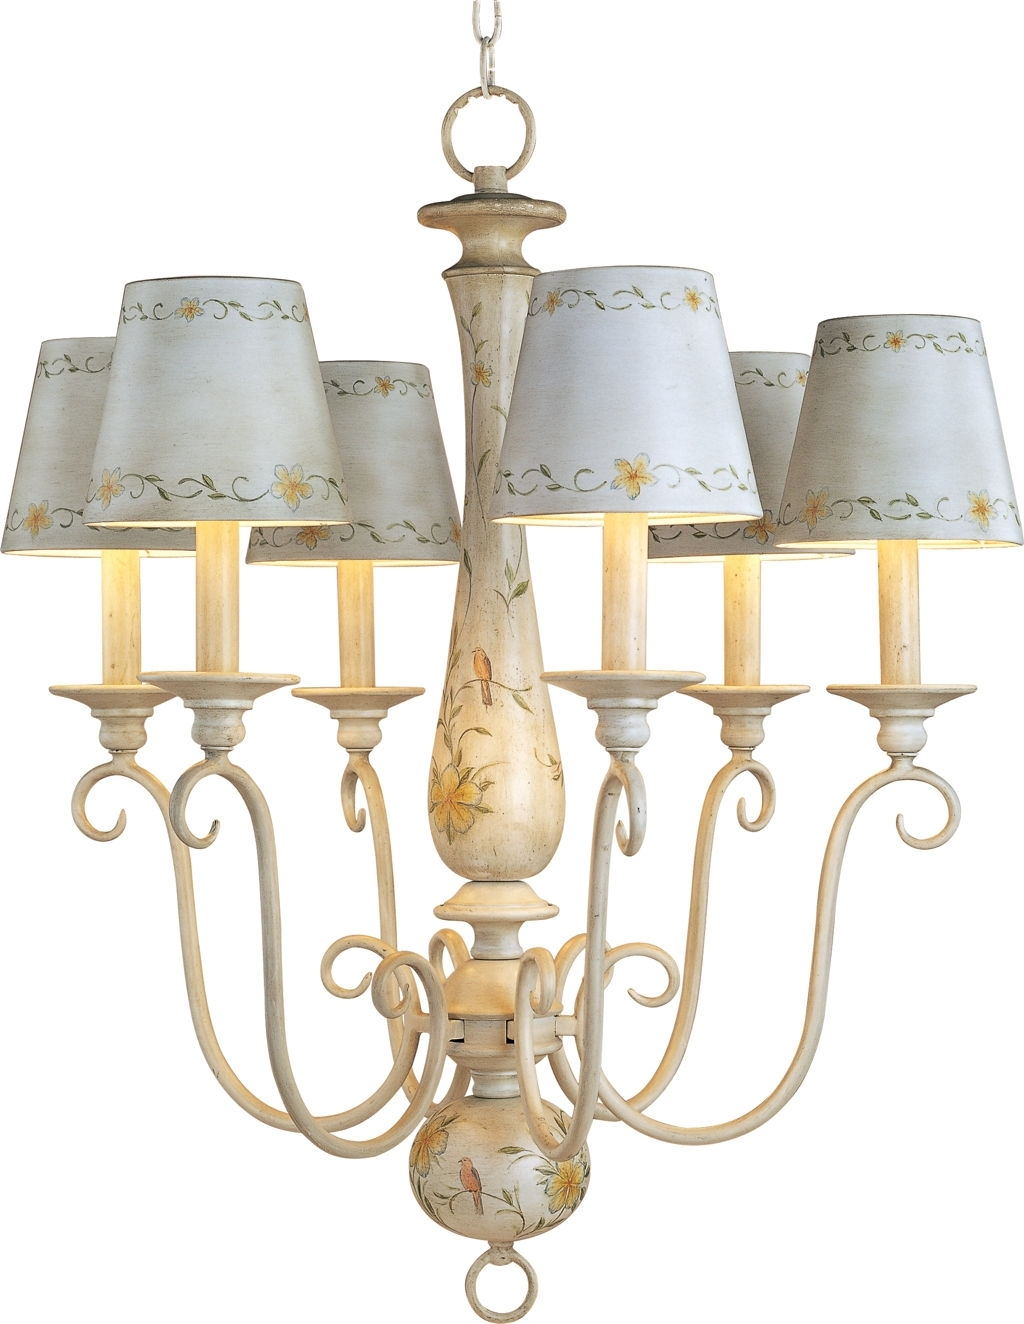 Latest Chandelier Lamp Shades Plus 5 Inch Lamp Shades Plus Small Clip On With Regard To Clip On Chandelier Lamp Shades (View 5 of 15)